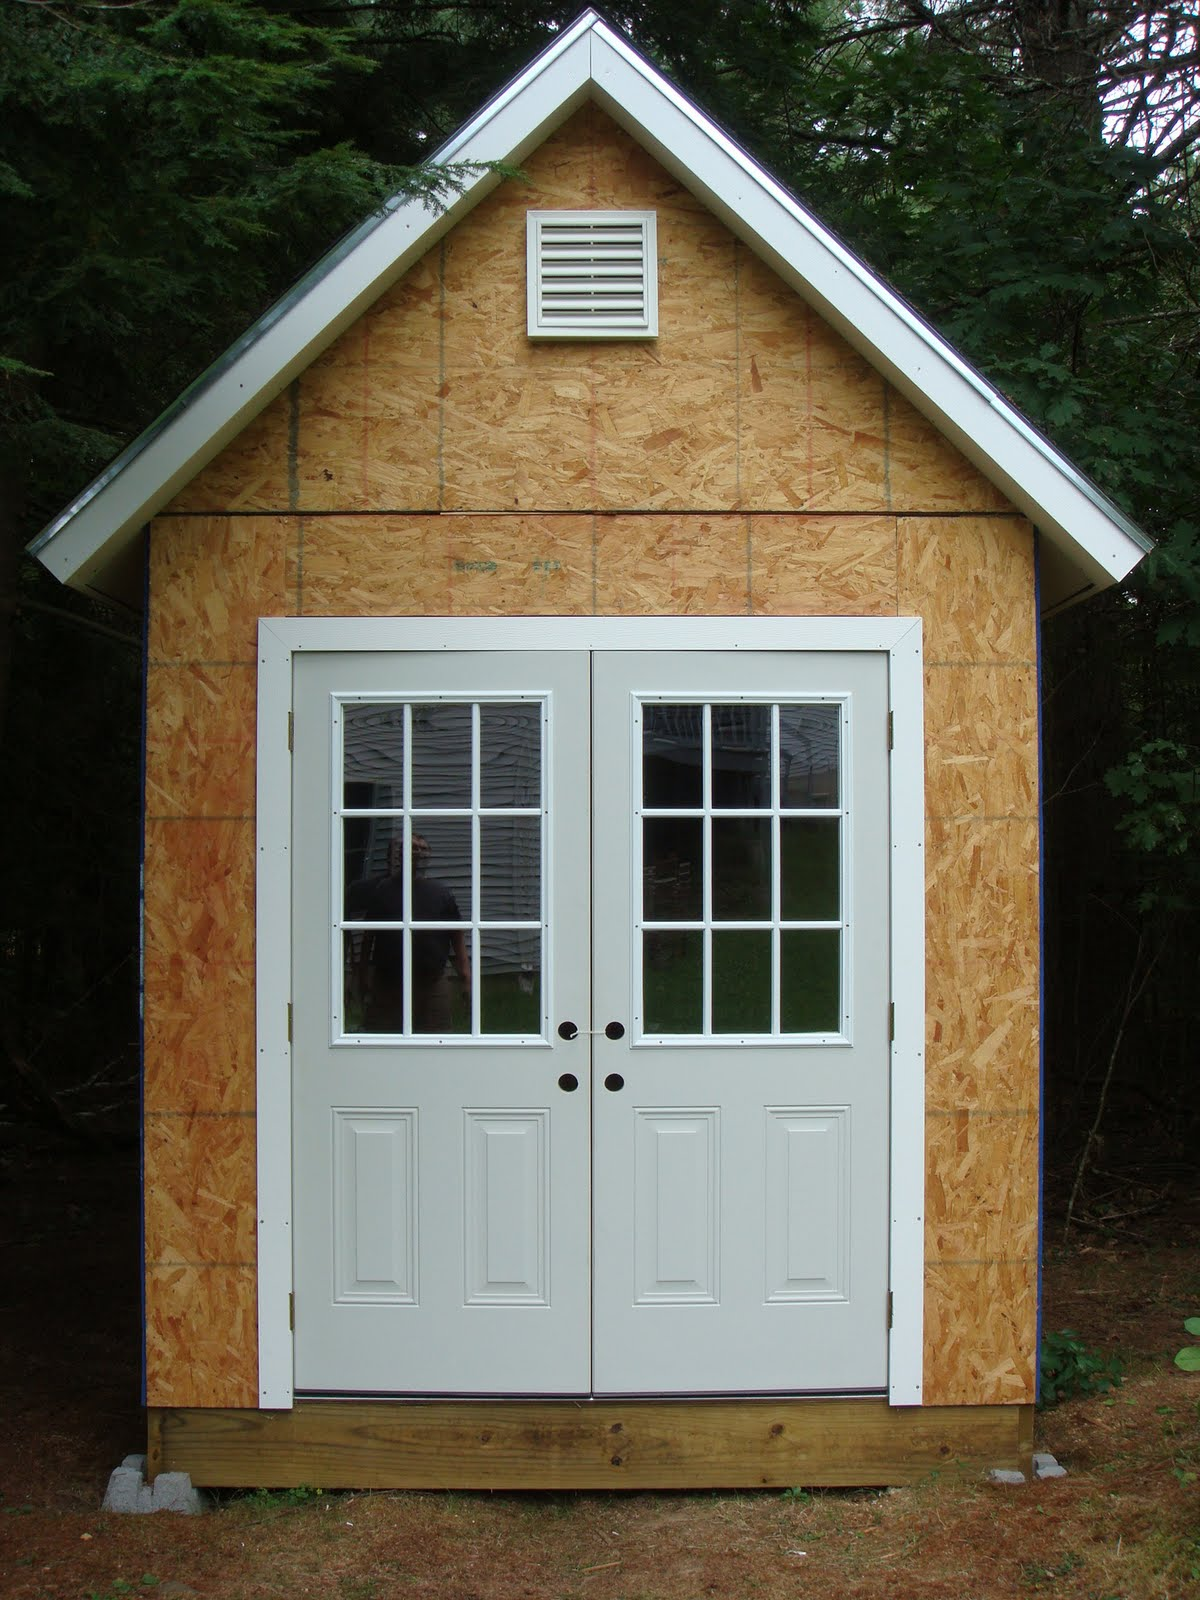 Shed Ideas Designs how to build your own shed from scratch and save time and money youtube Shed Door Design Shed Door Design Ideas